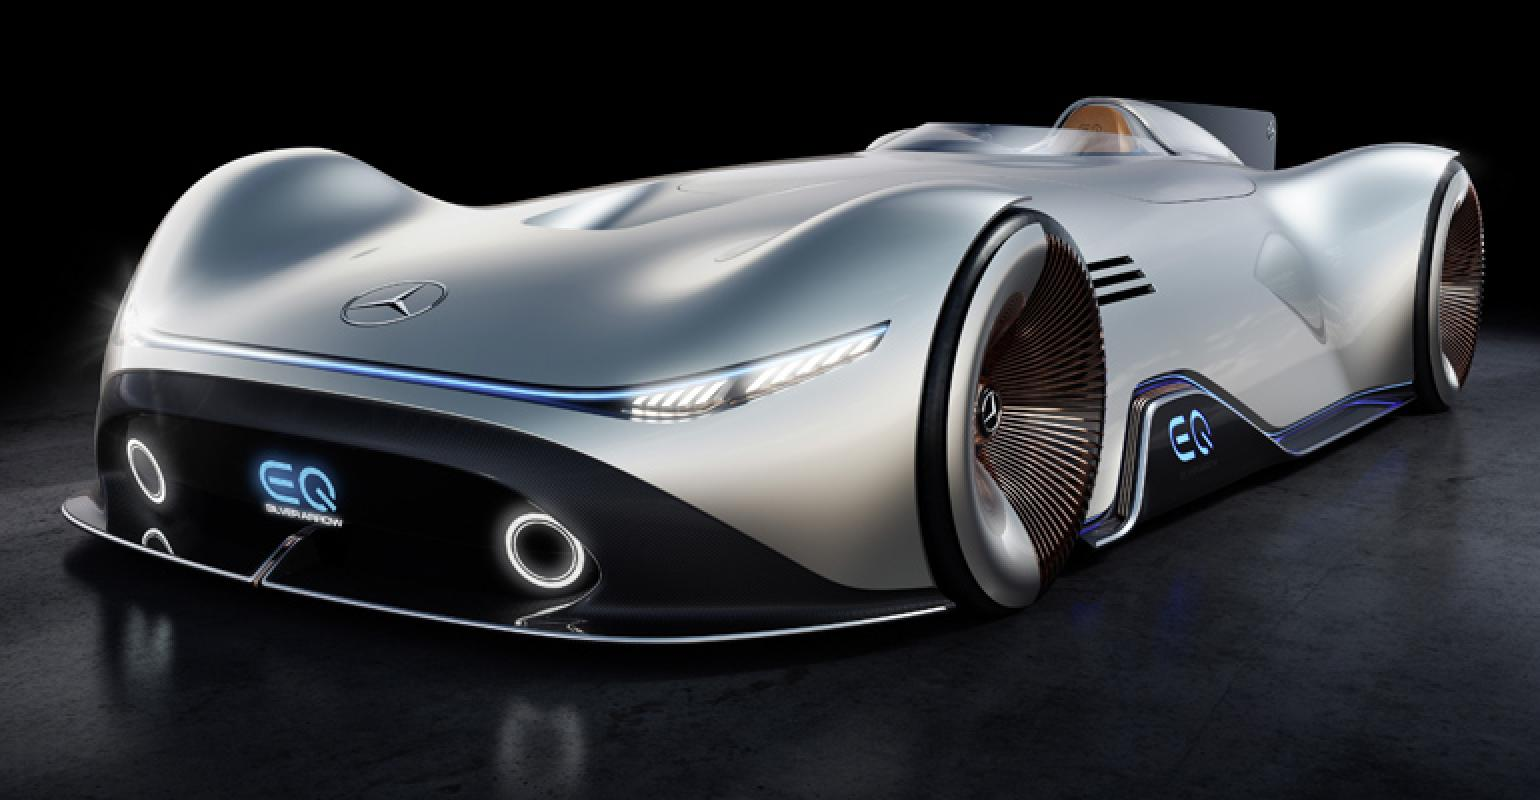 Mercedes Benz Eq Silver Arrow Points To Electric Future Wardsauto